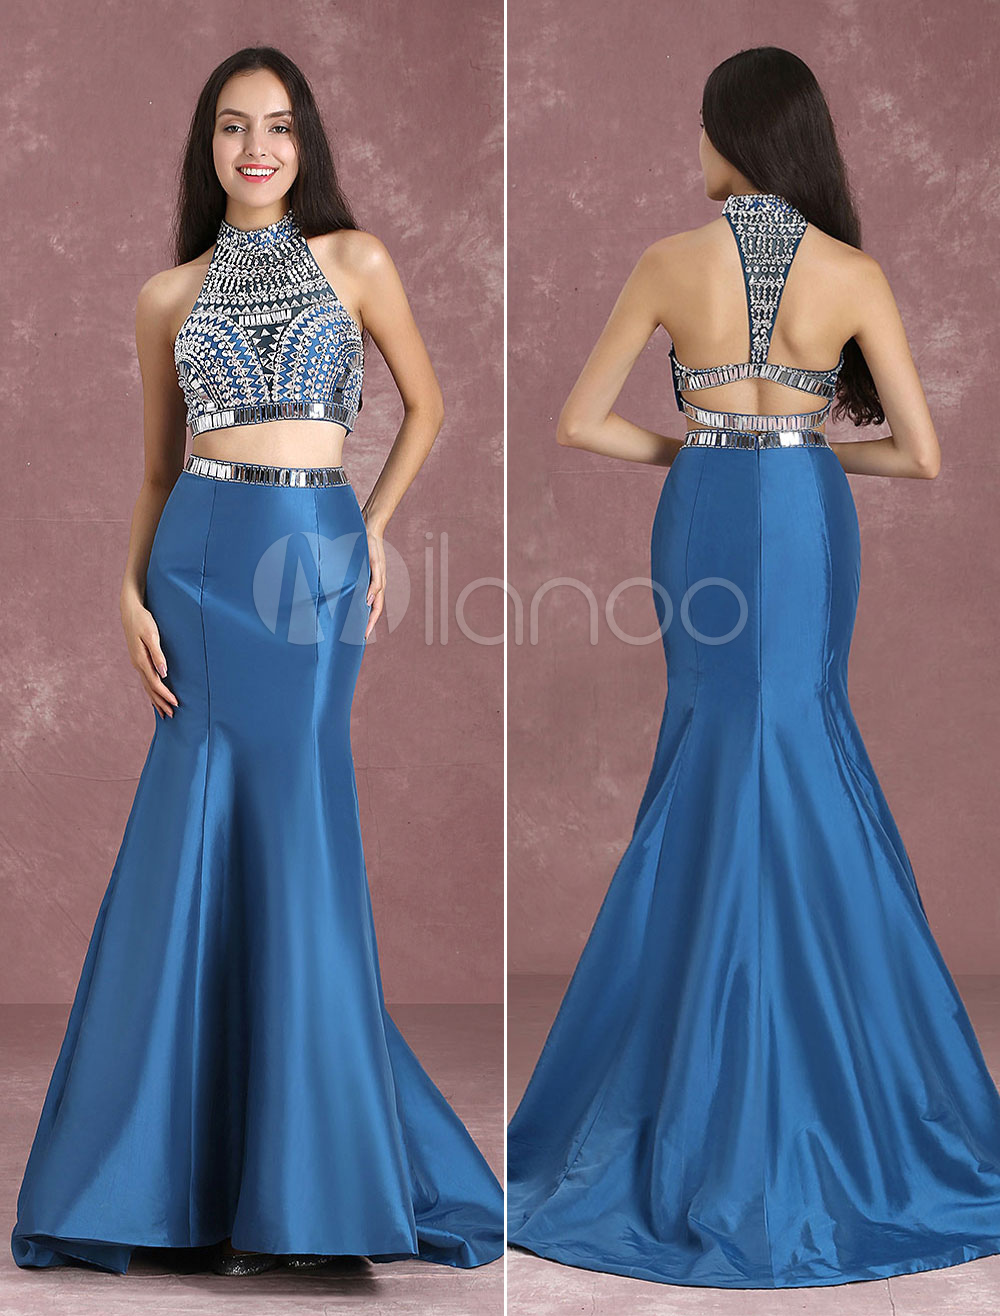 64b1edda4934 ... Two Piece Prom Dresses Mermaid Homecoming Dress Crop Top Ink Blue  Taffeta Beading High Collar Occasion. 12. 45%OFF. Color:Ink Blue